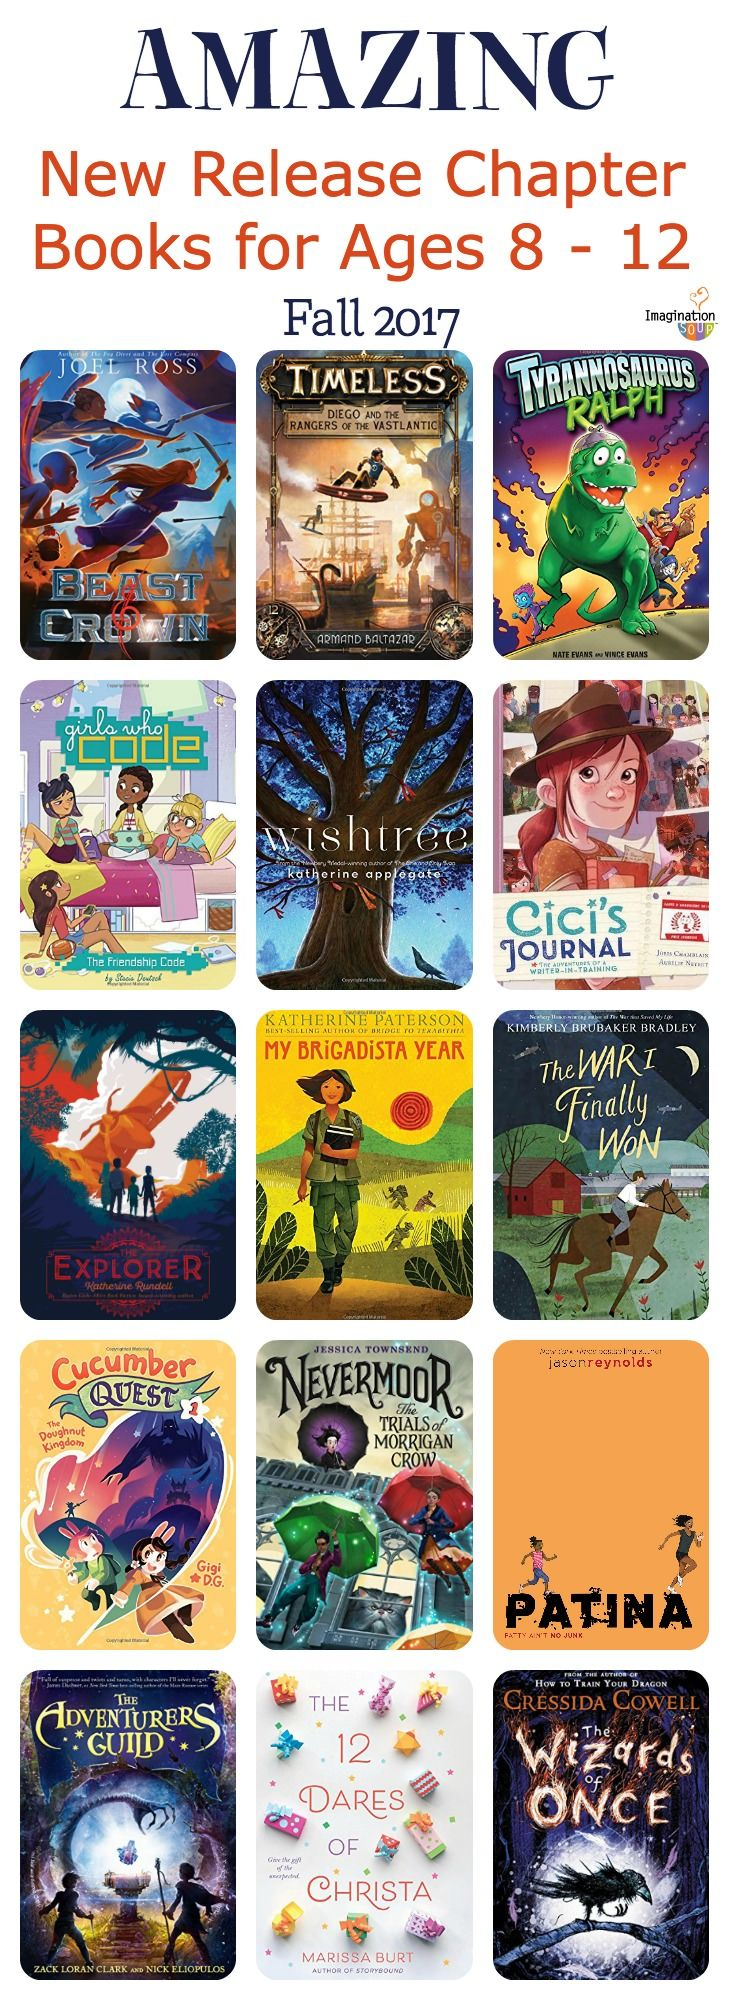 Amazing chapter books for ages 8 12 late fall 2017